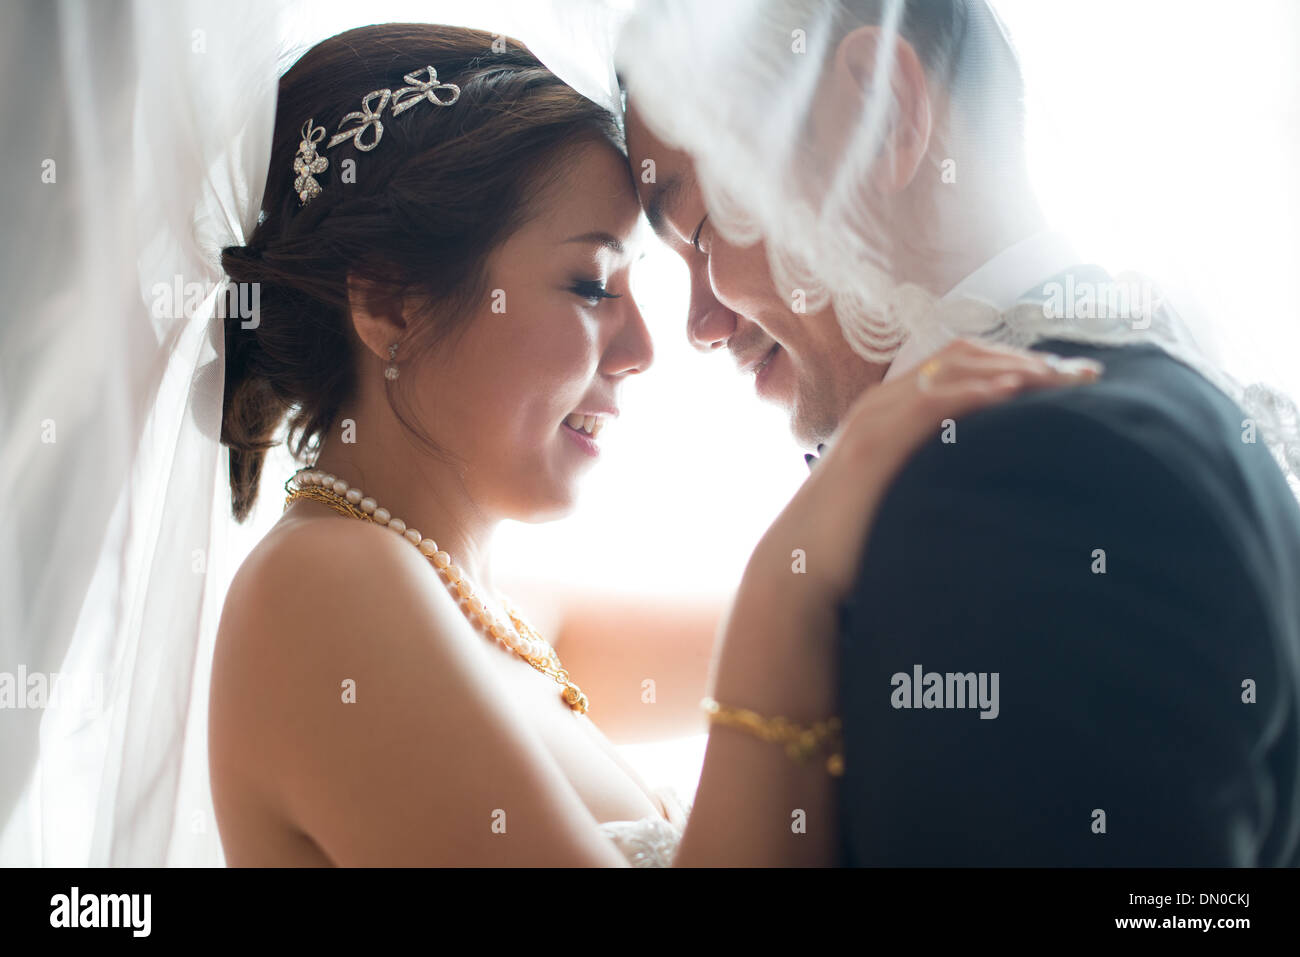 Romantic Asian Chinese wedding couple. Bride and groom dancing in love on wedding day. - Stock Image